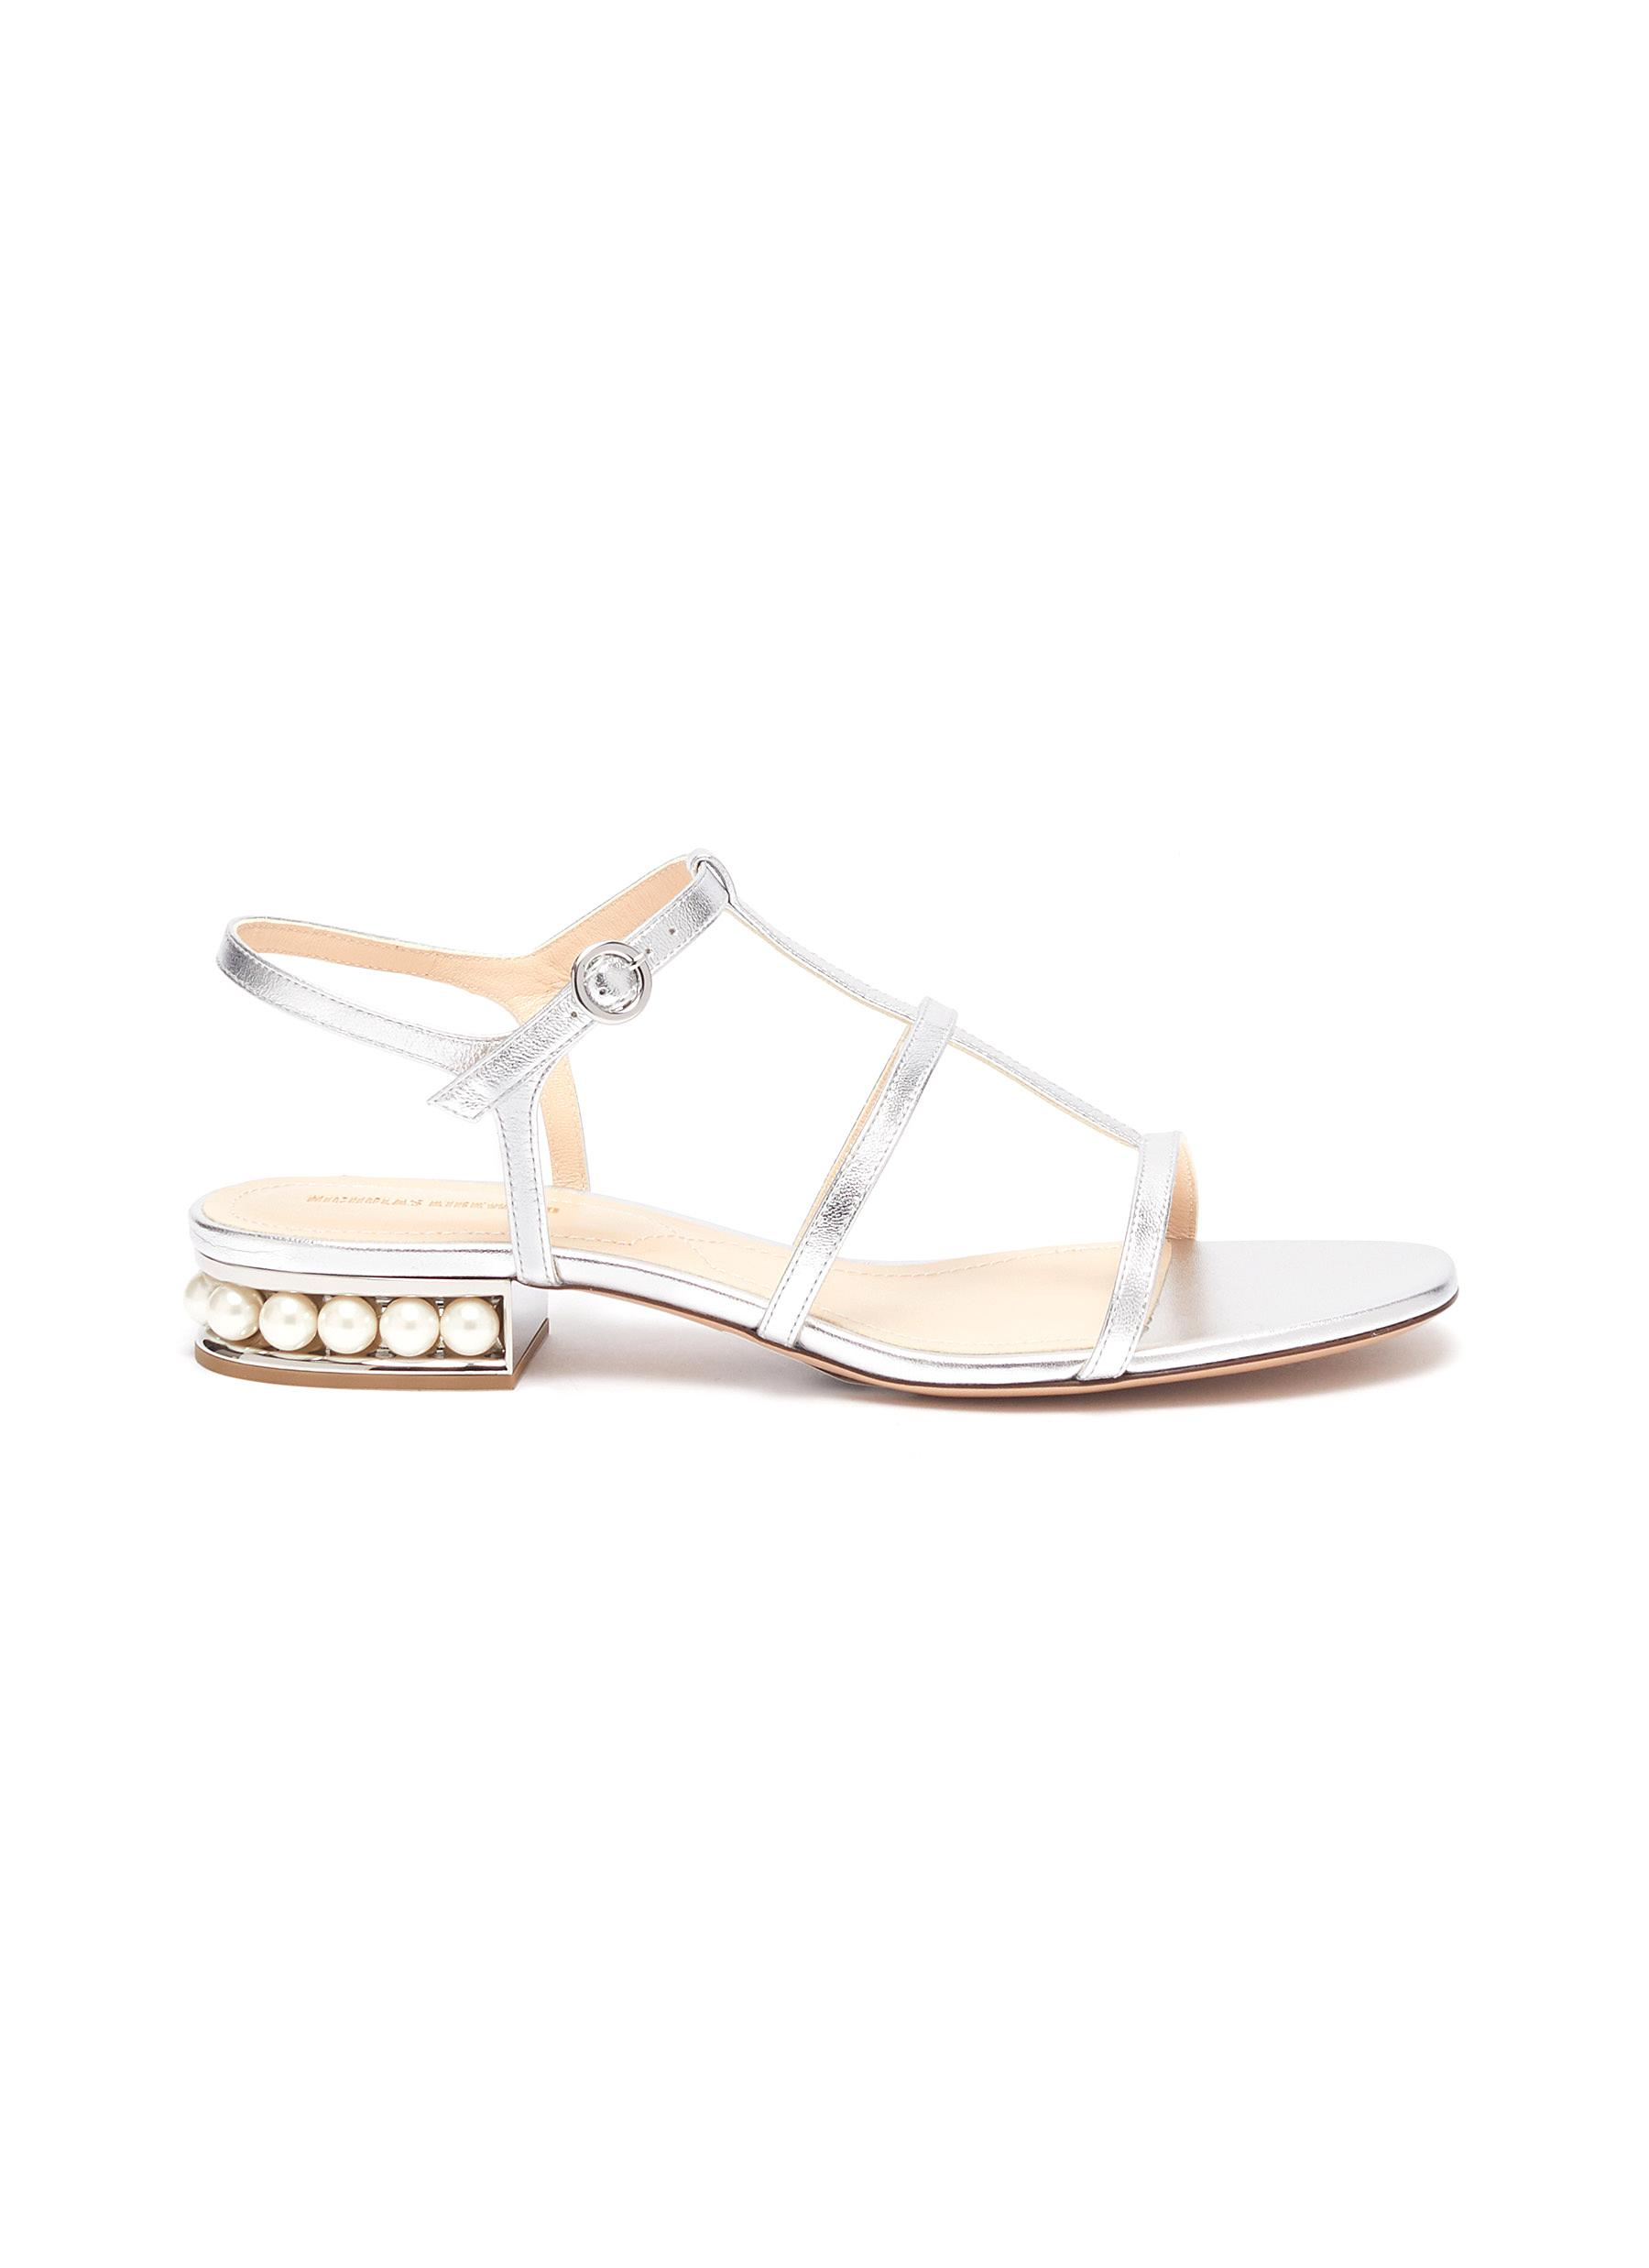 Nicholas Kirkwood Flats Casati faux pearl heel metallic leather sandals